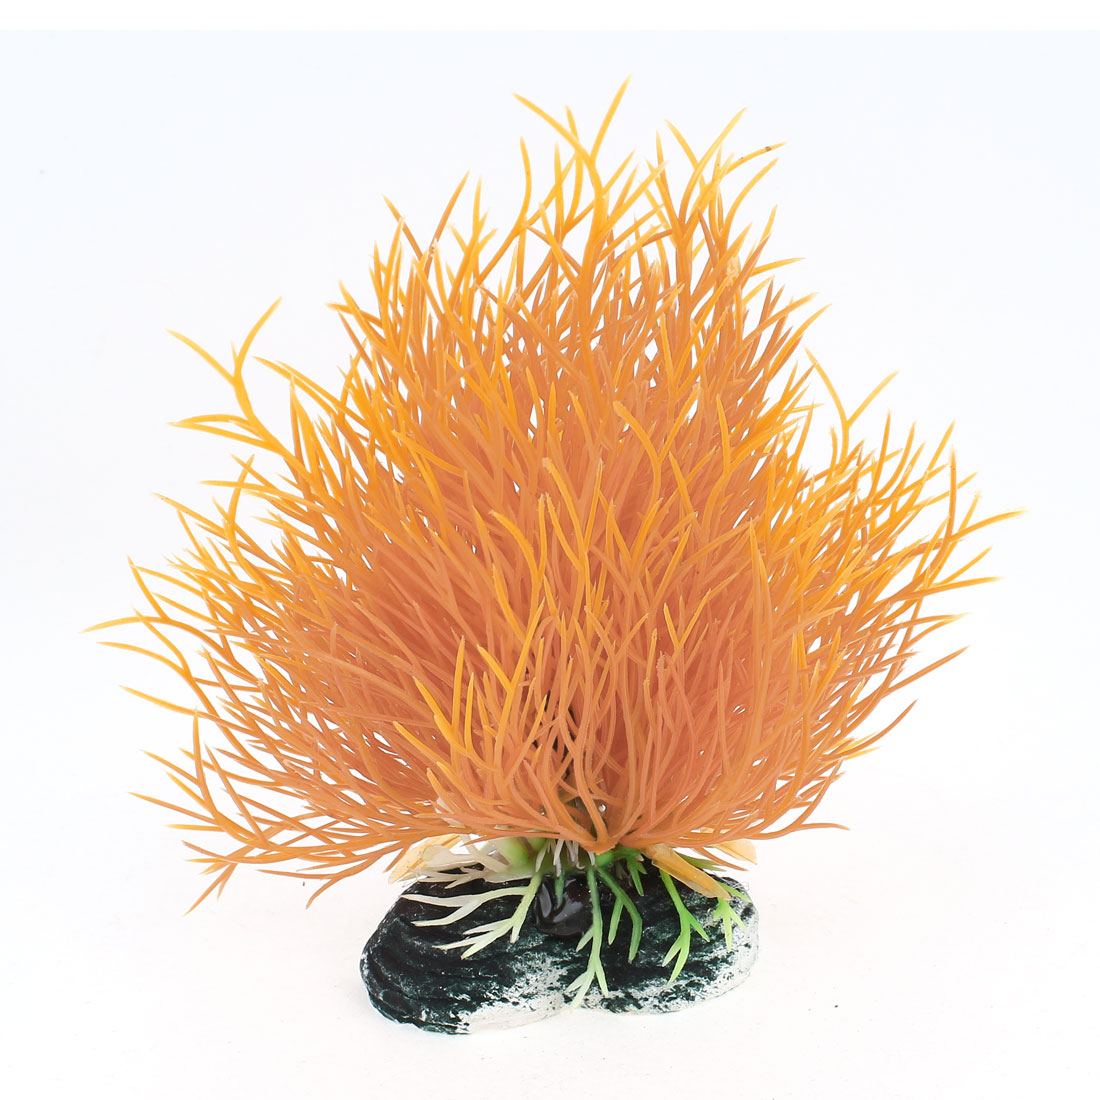 11cm High Artificial Orange Water Grass Decoration for Fish Tank